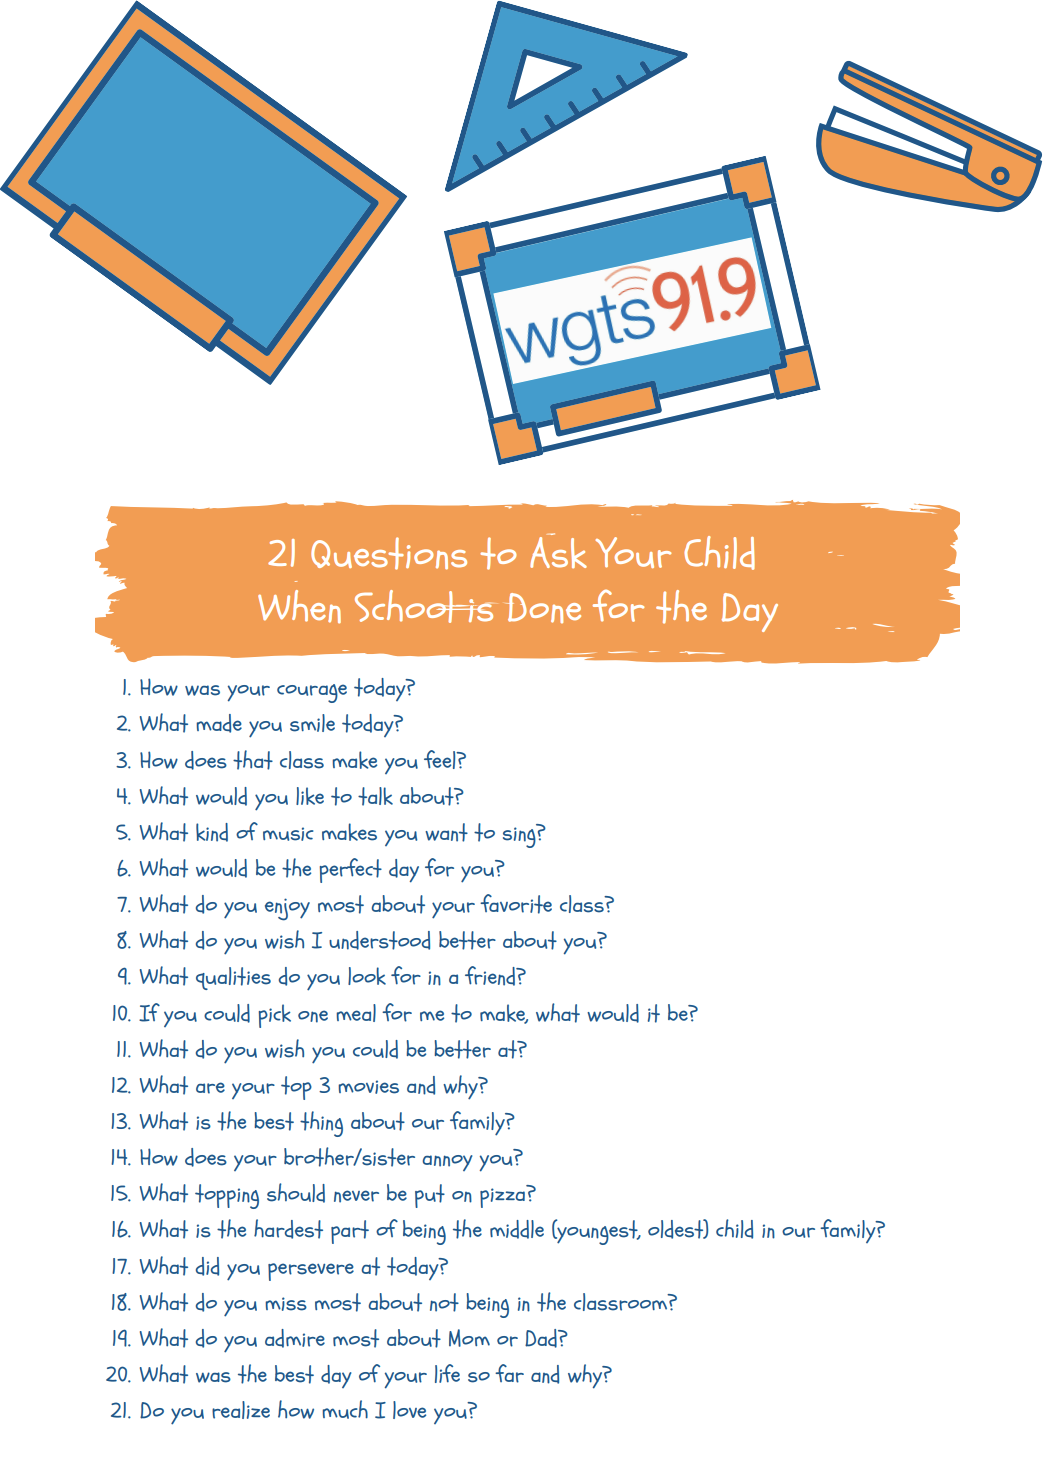 21 questions to ask your kids - full